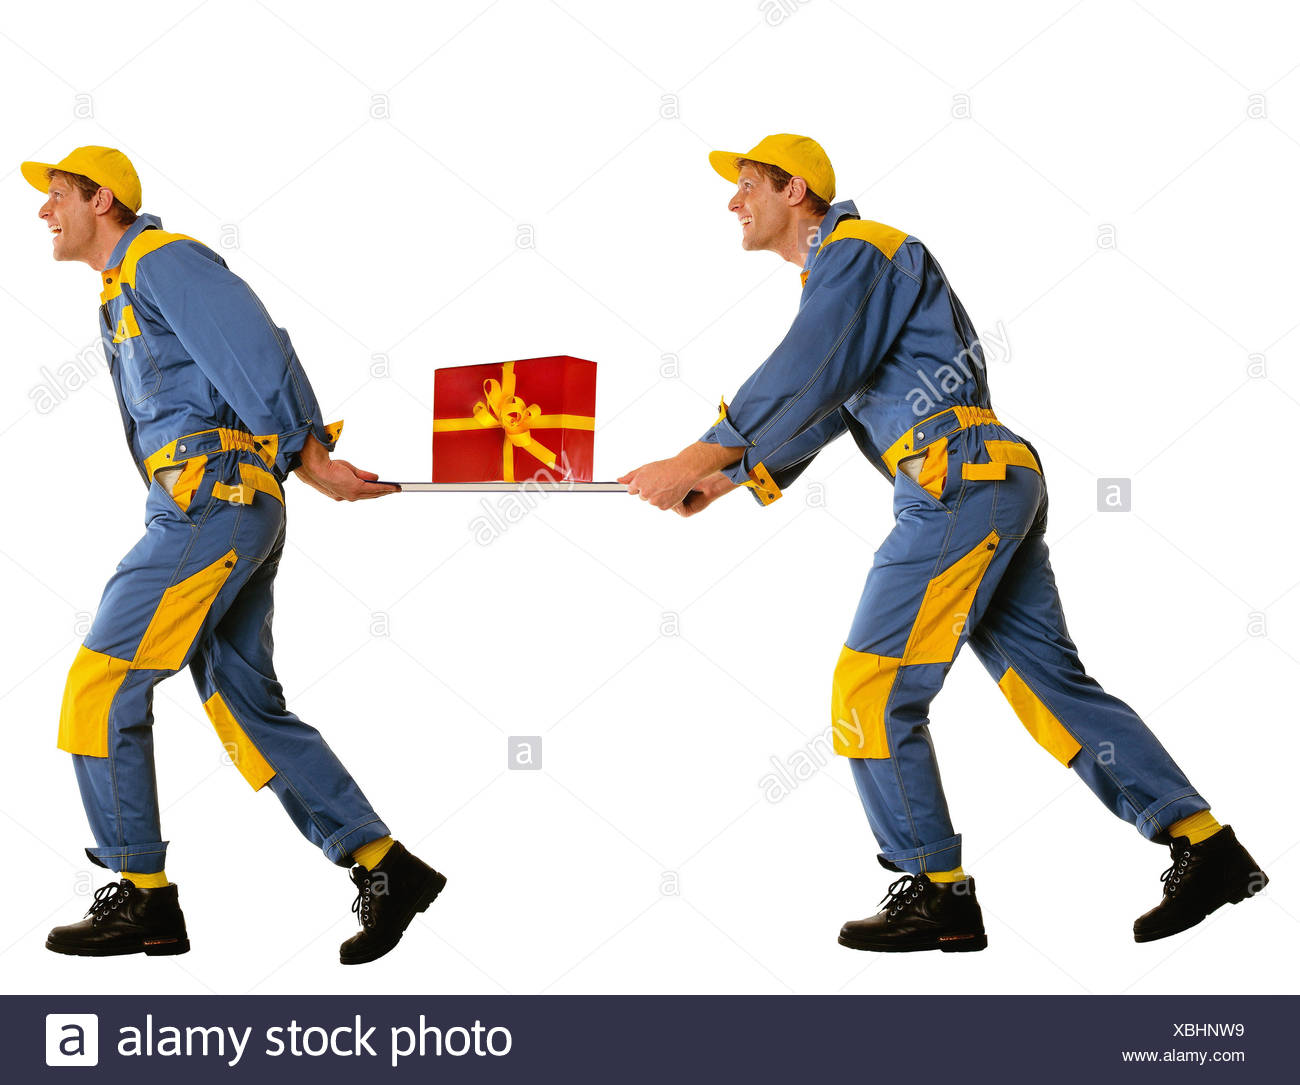 Messengers, present, block, there run, tread, professions, man, occupation, parcel delivers, package delivery, package, studio, cut out, messenger, humor, - Stock Image